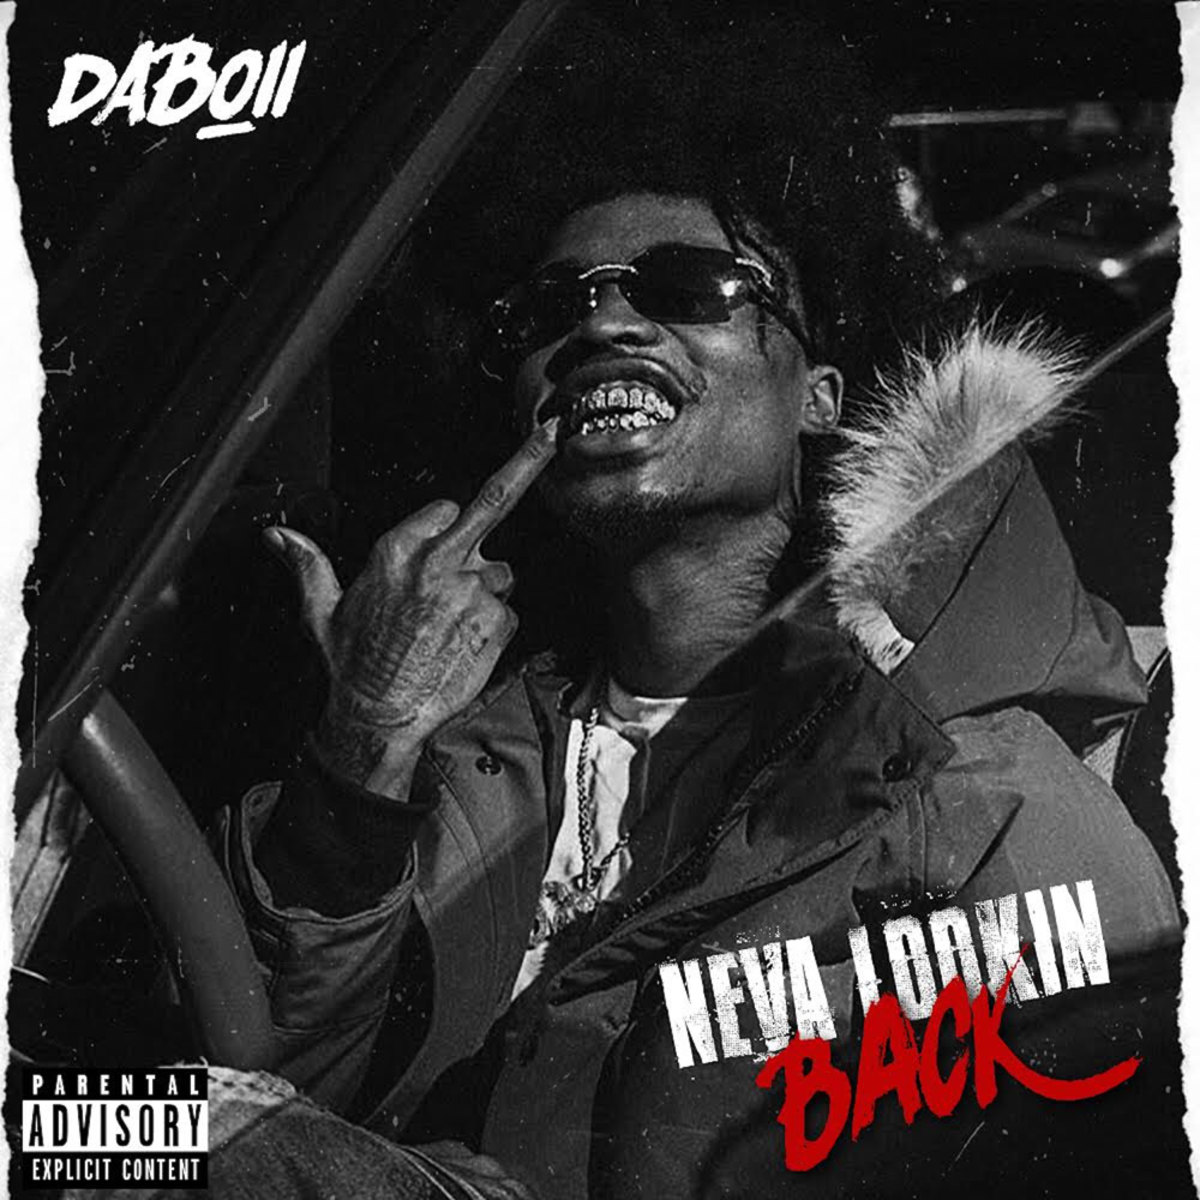 daboii-never-lookin-back